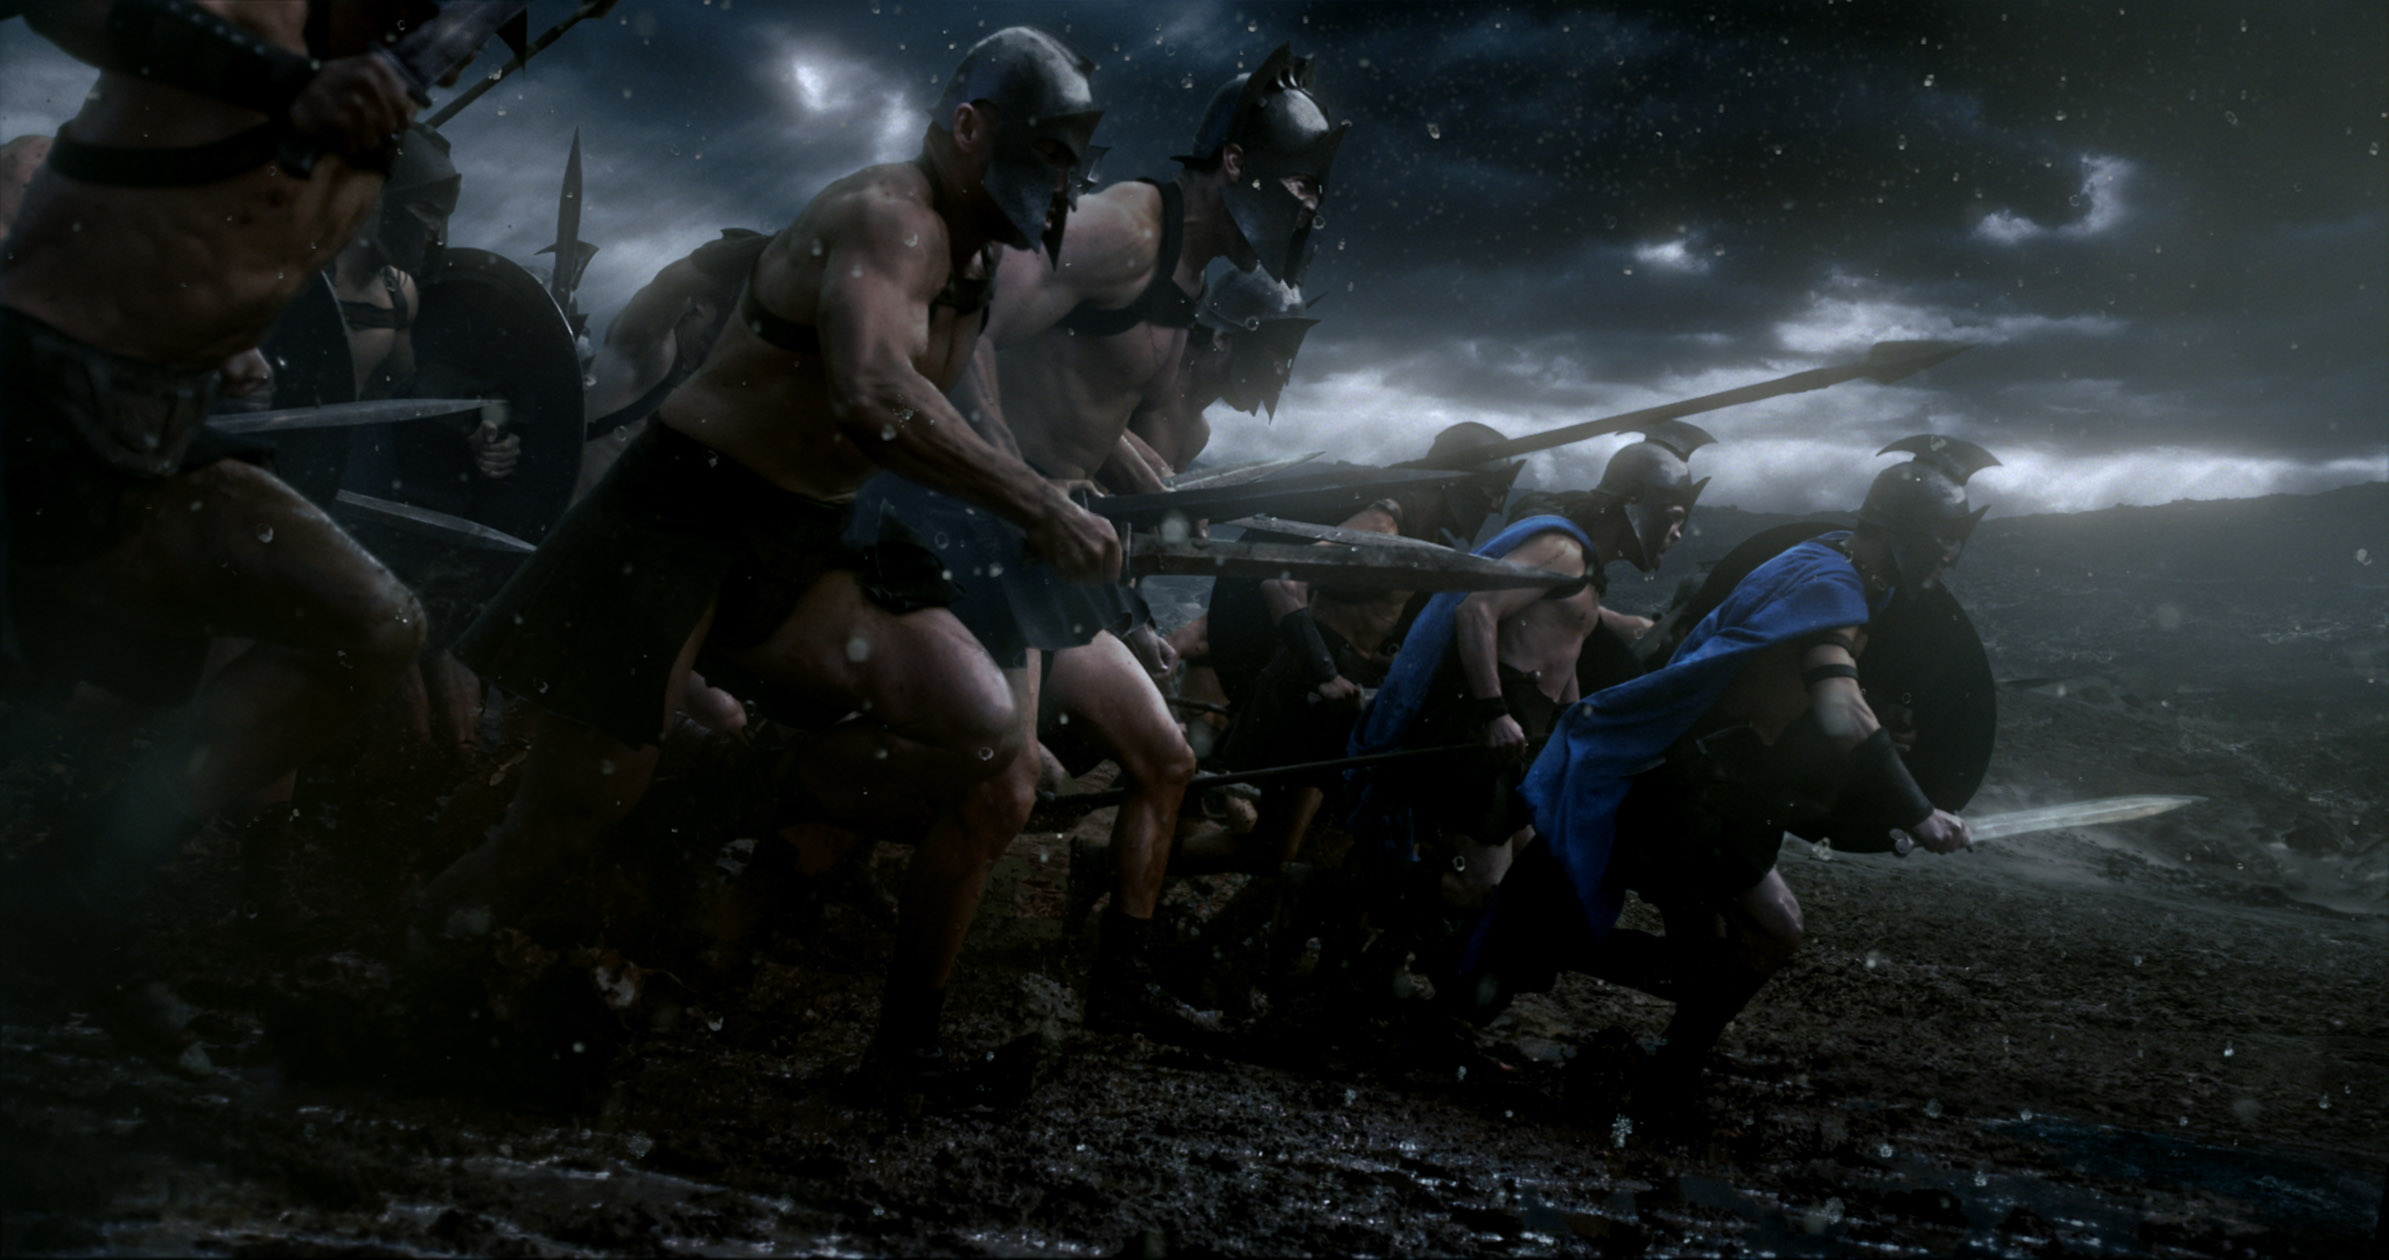 A scene from 300: Rise of an Empire.